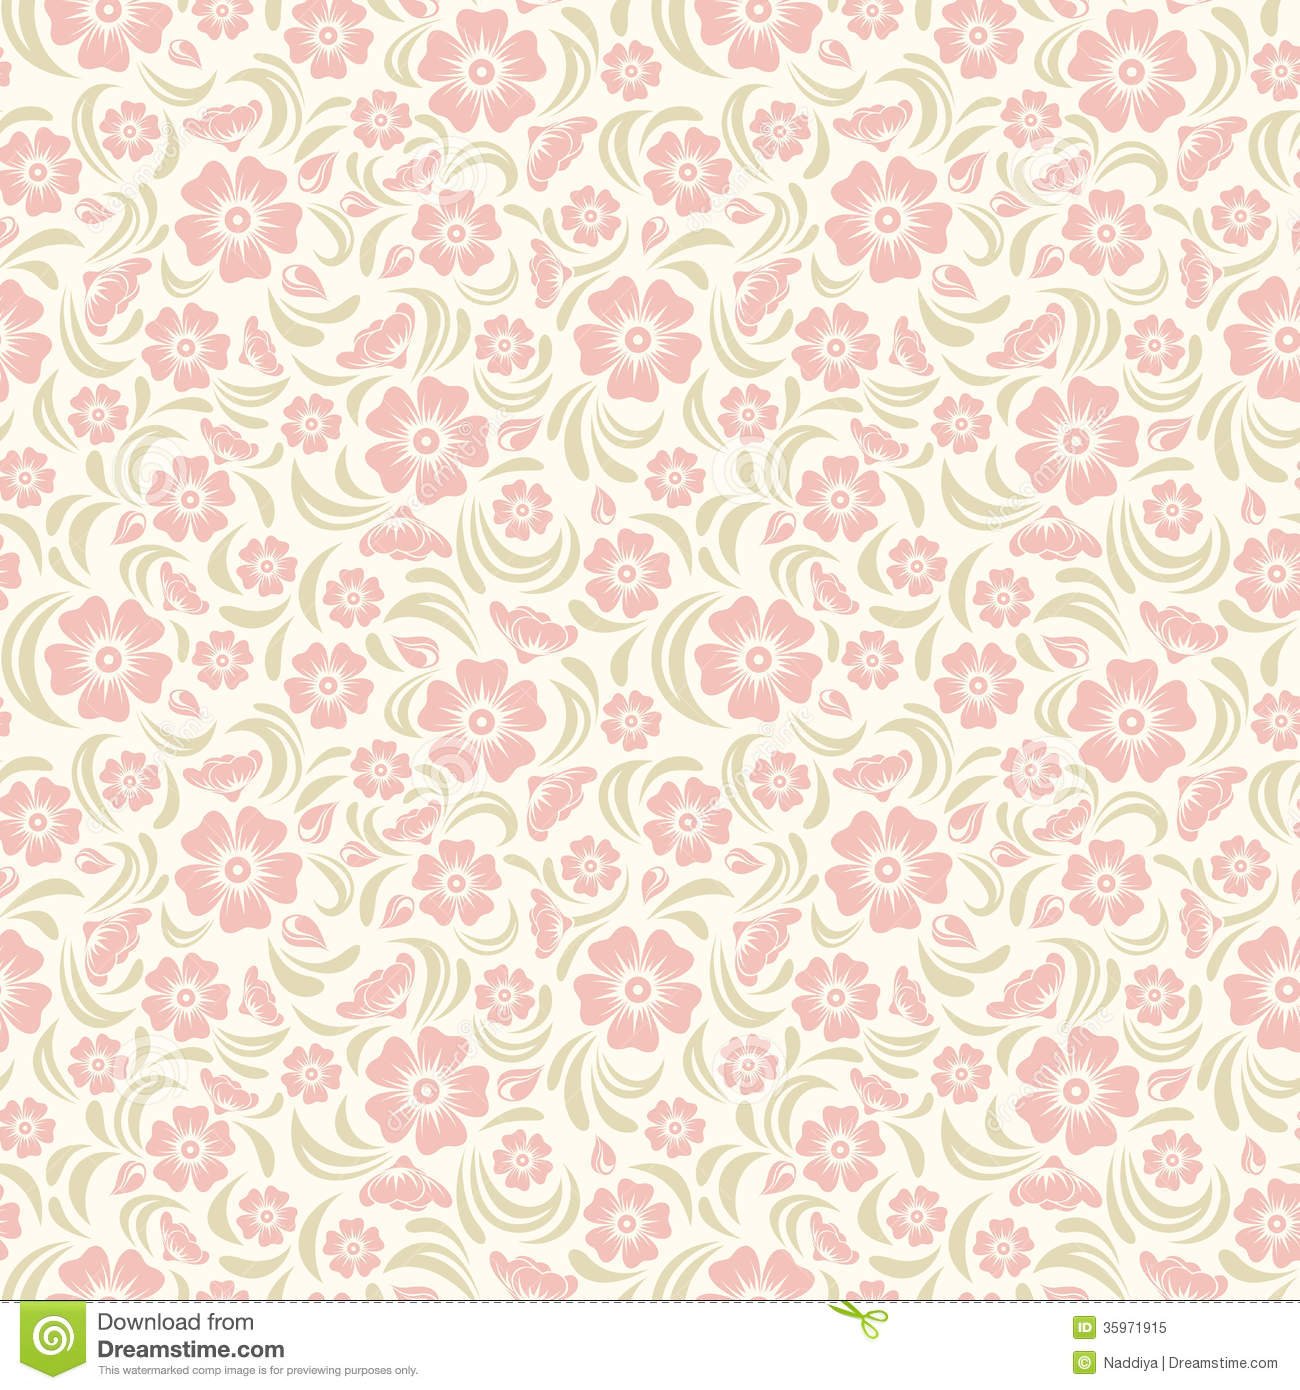 Seamless Vintage Floral Pattern Stock Vector Illustration Of